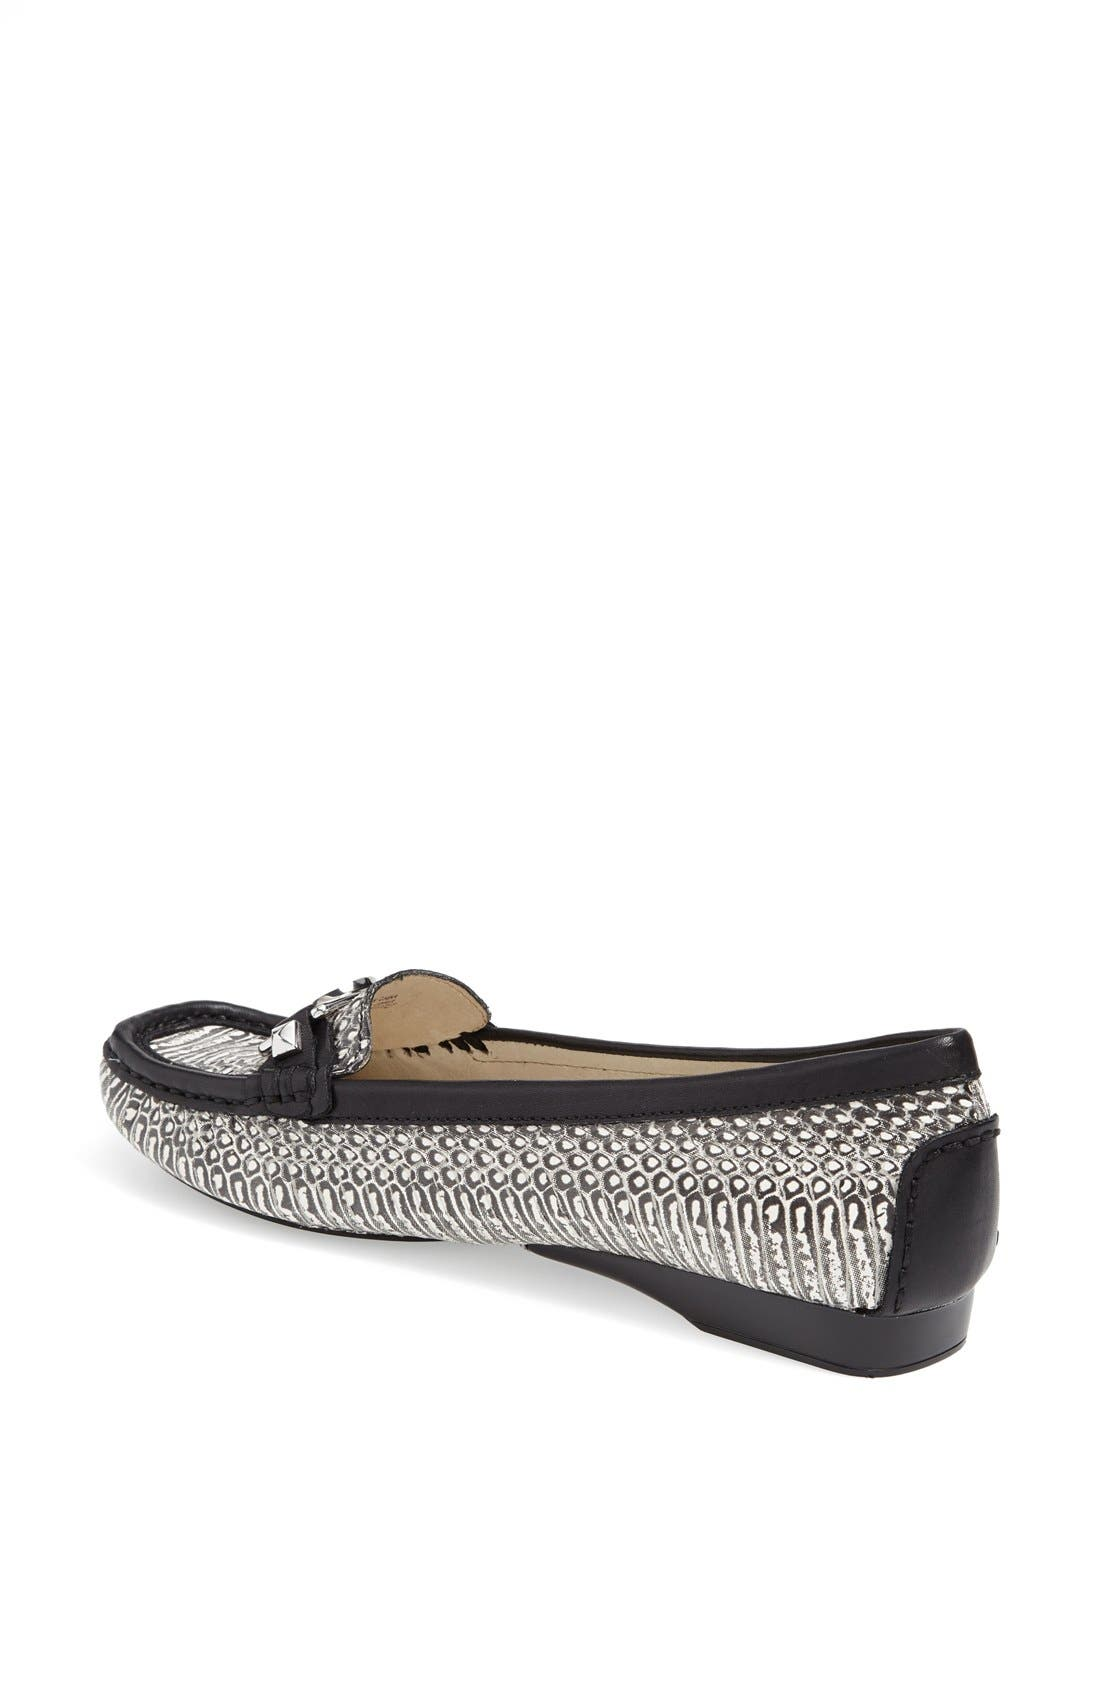 Alternate Image 2  - MICHAEL Michael Kors 'Charm' Snake Embossed Leather Flat